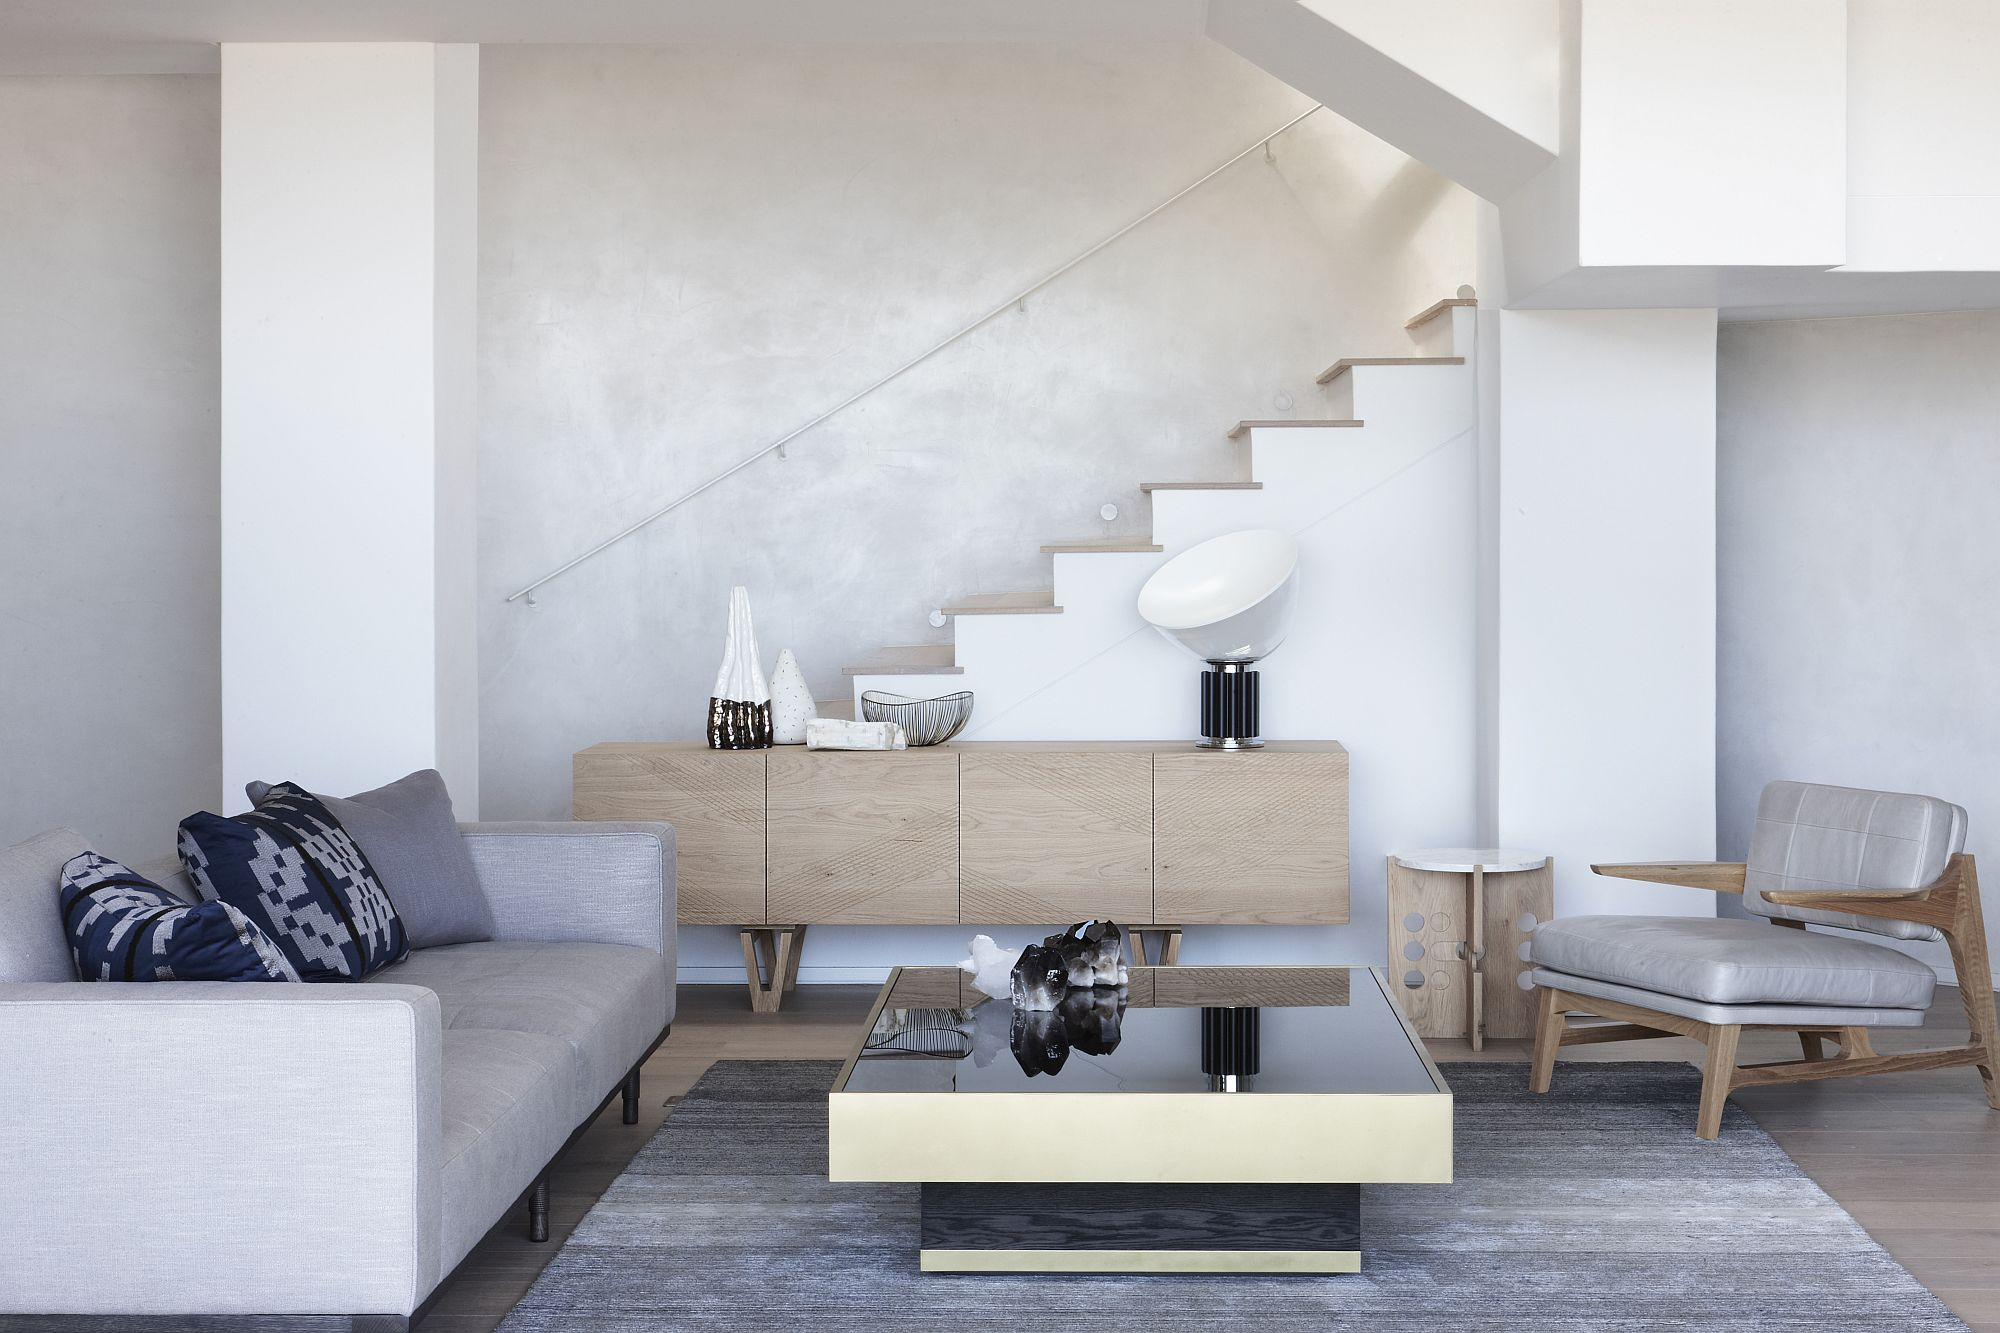 Decor inside the Cape Town house has a modern minimall appeal to it